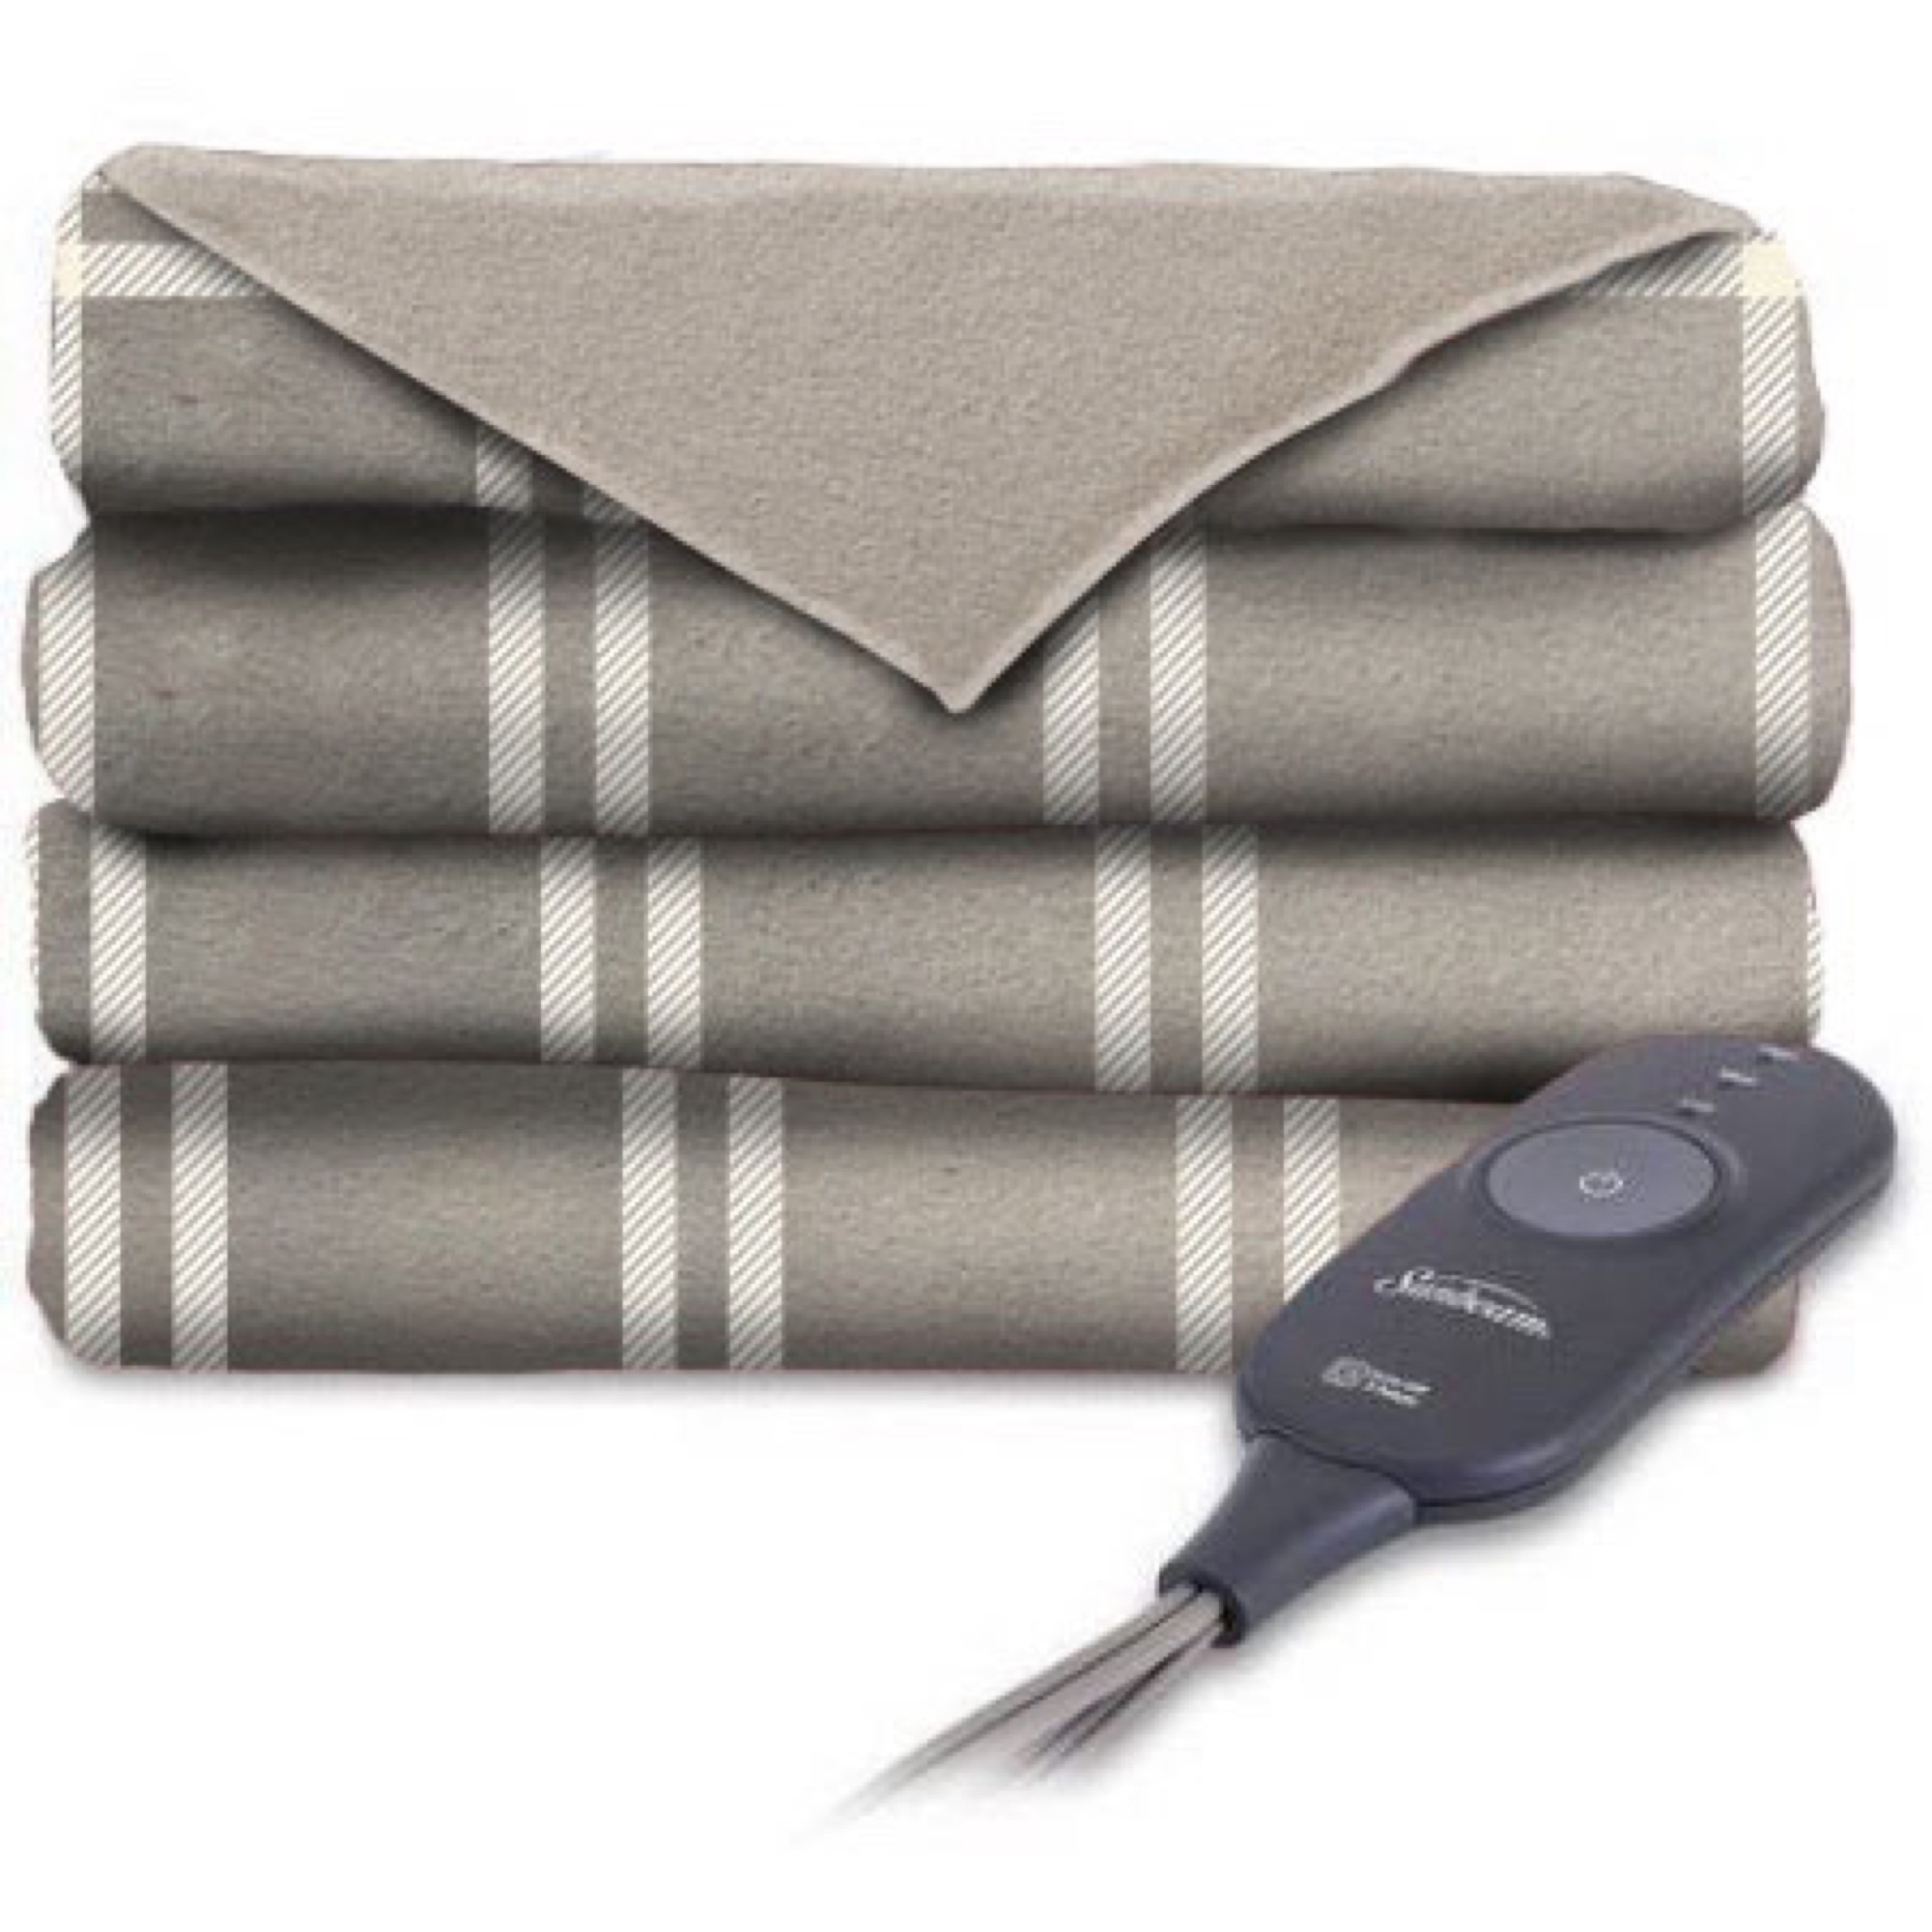 Sunbeam Electric Heated Microplush Throw Blanket, 60-Inch by 50-Inch